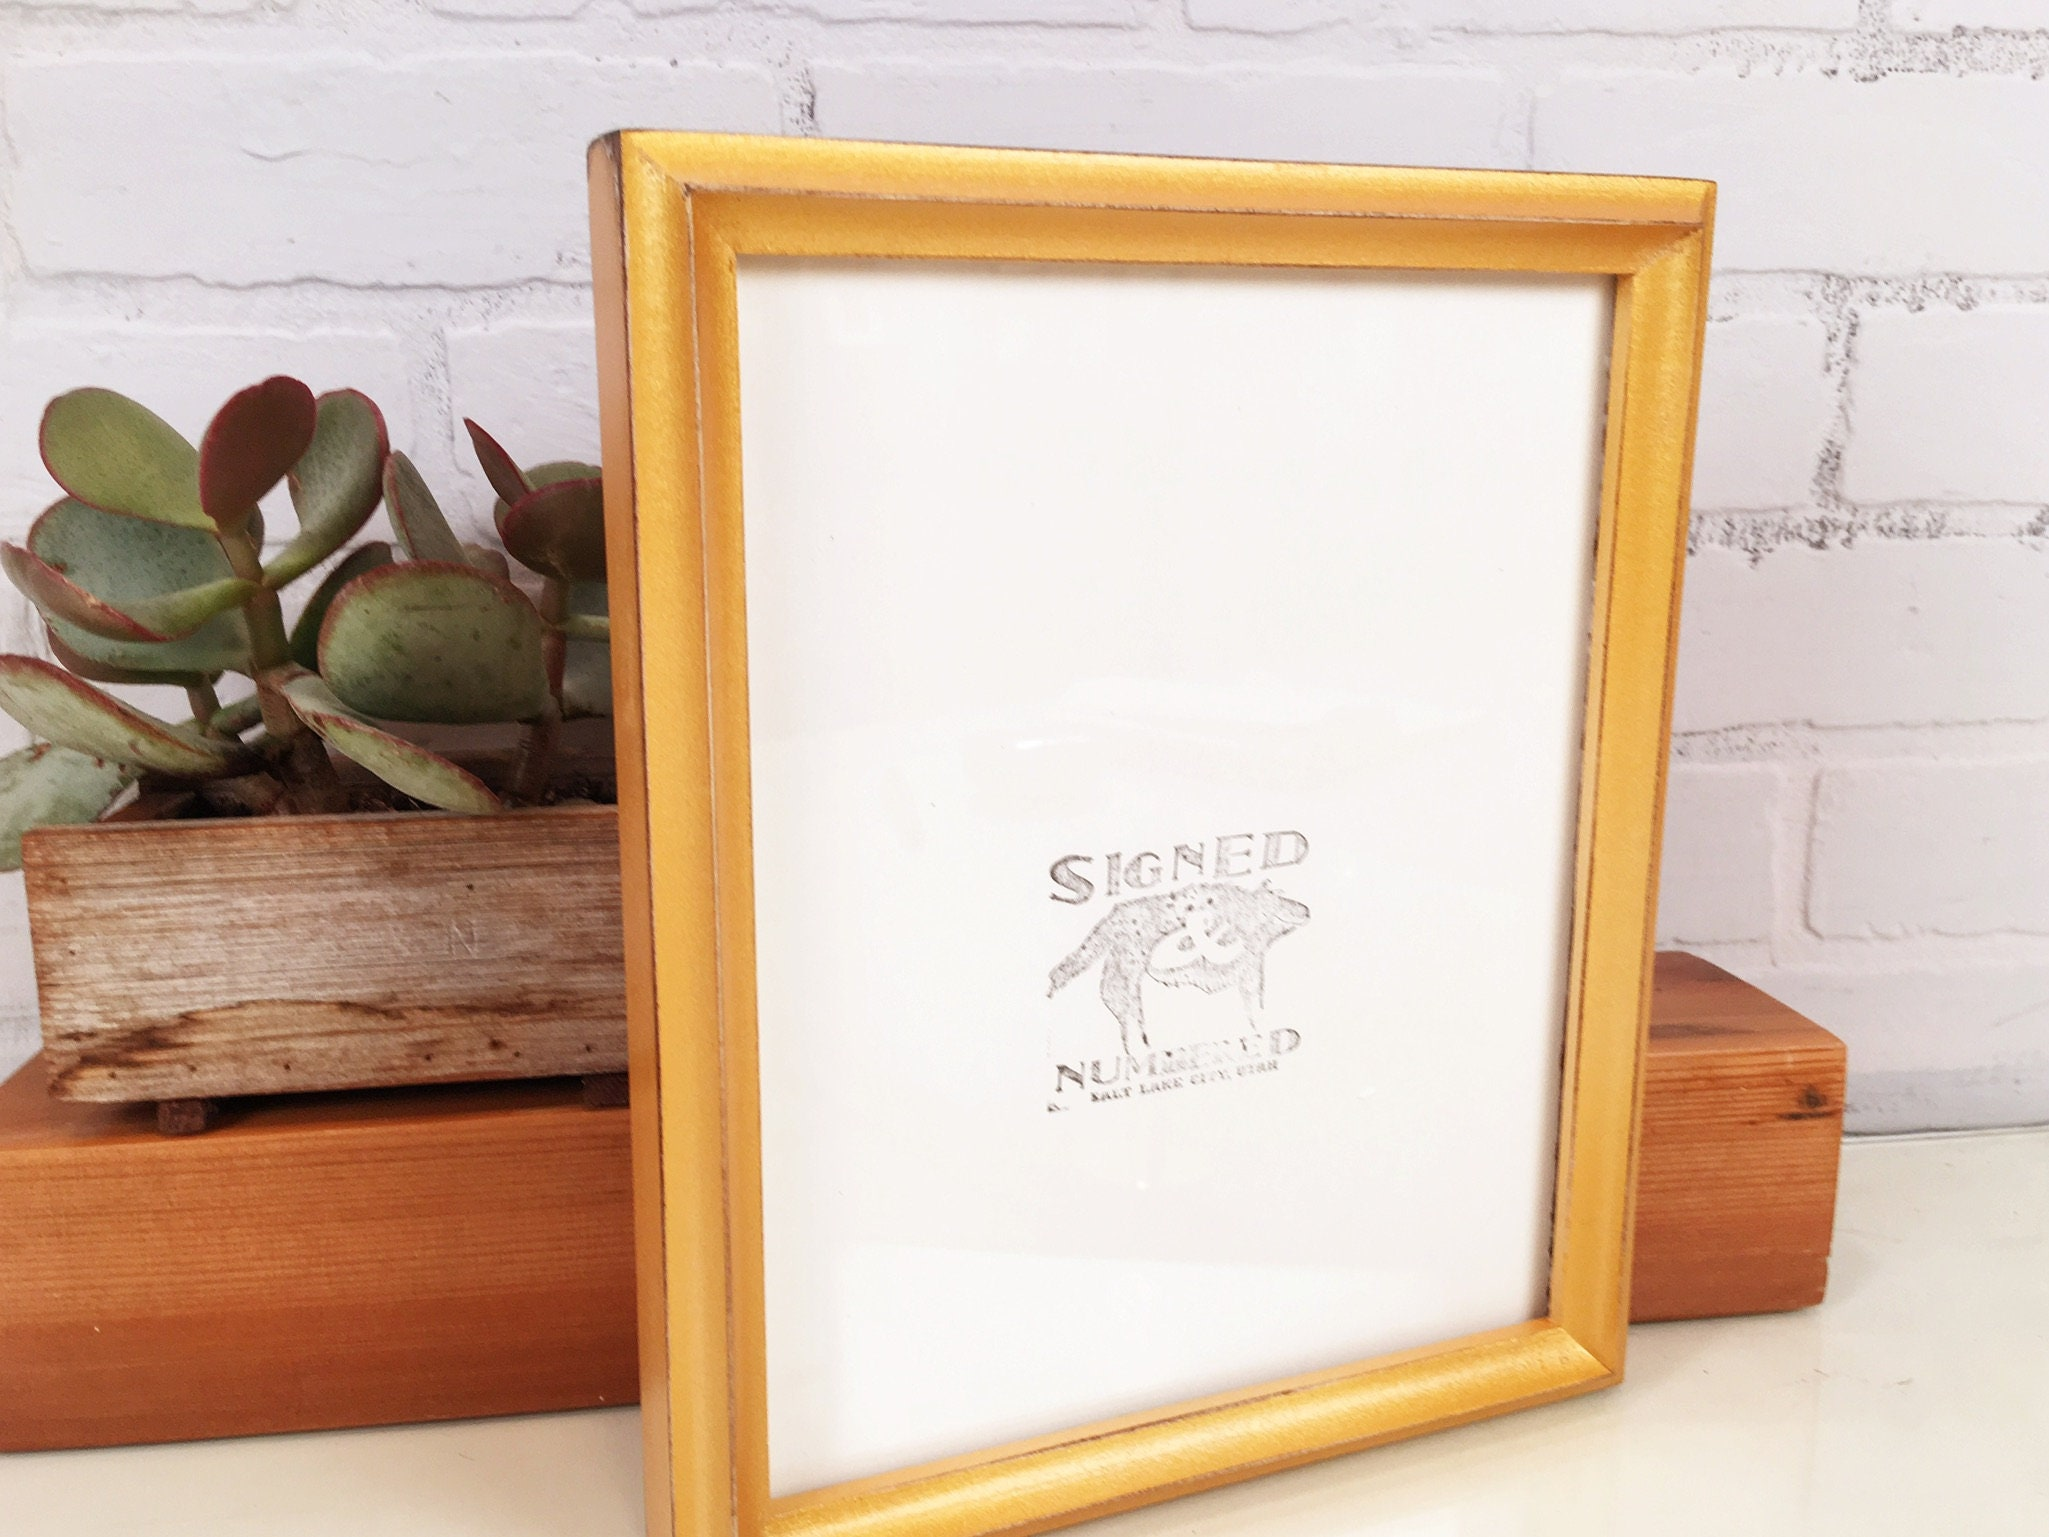 8x10 Picture Frame in Better Deep Double Cove Style with Vintage ...